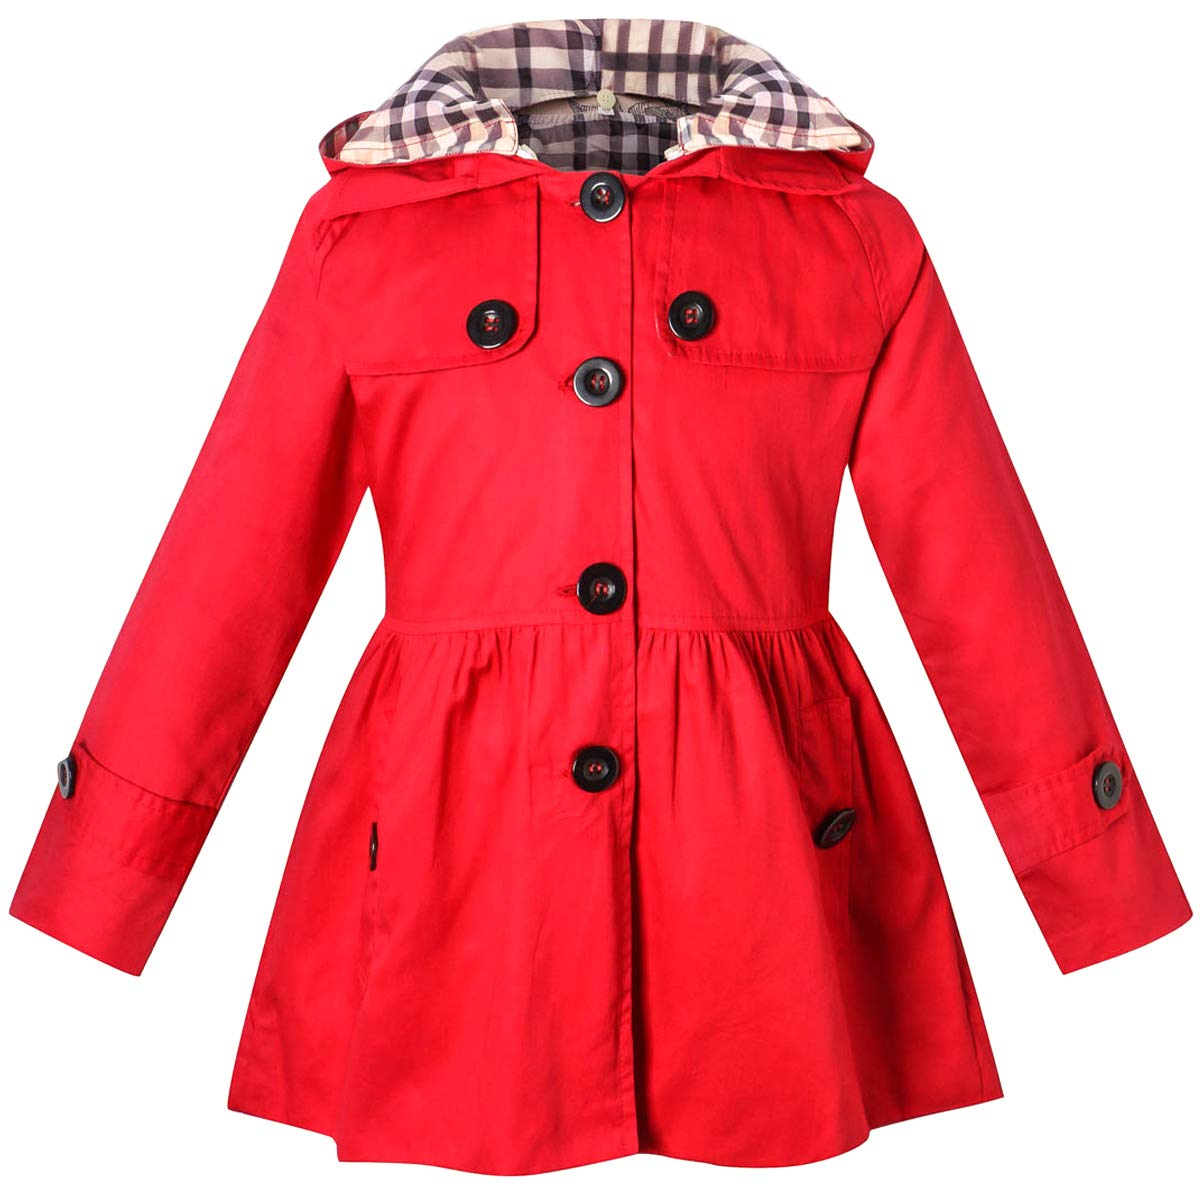 Long Sleeves Vintage Floral Print Chino Cotton Hooded Hoodie Trench Coat Outerwear Windbreaker for Little Girls & Big Girls, Red, 9-10 Years=Tag 150